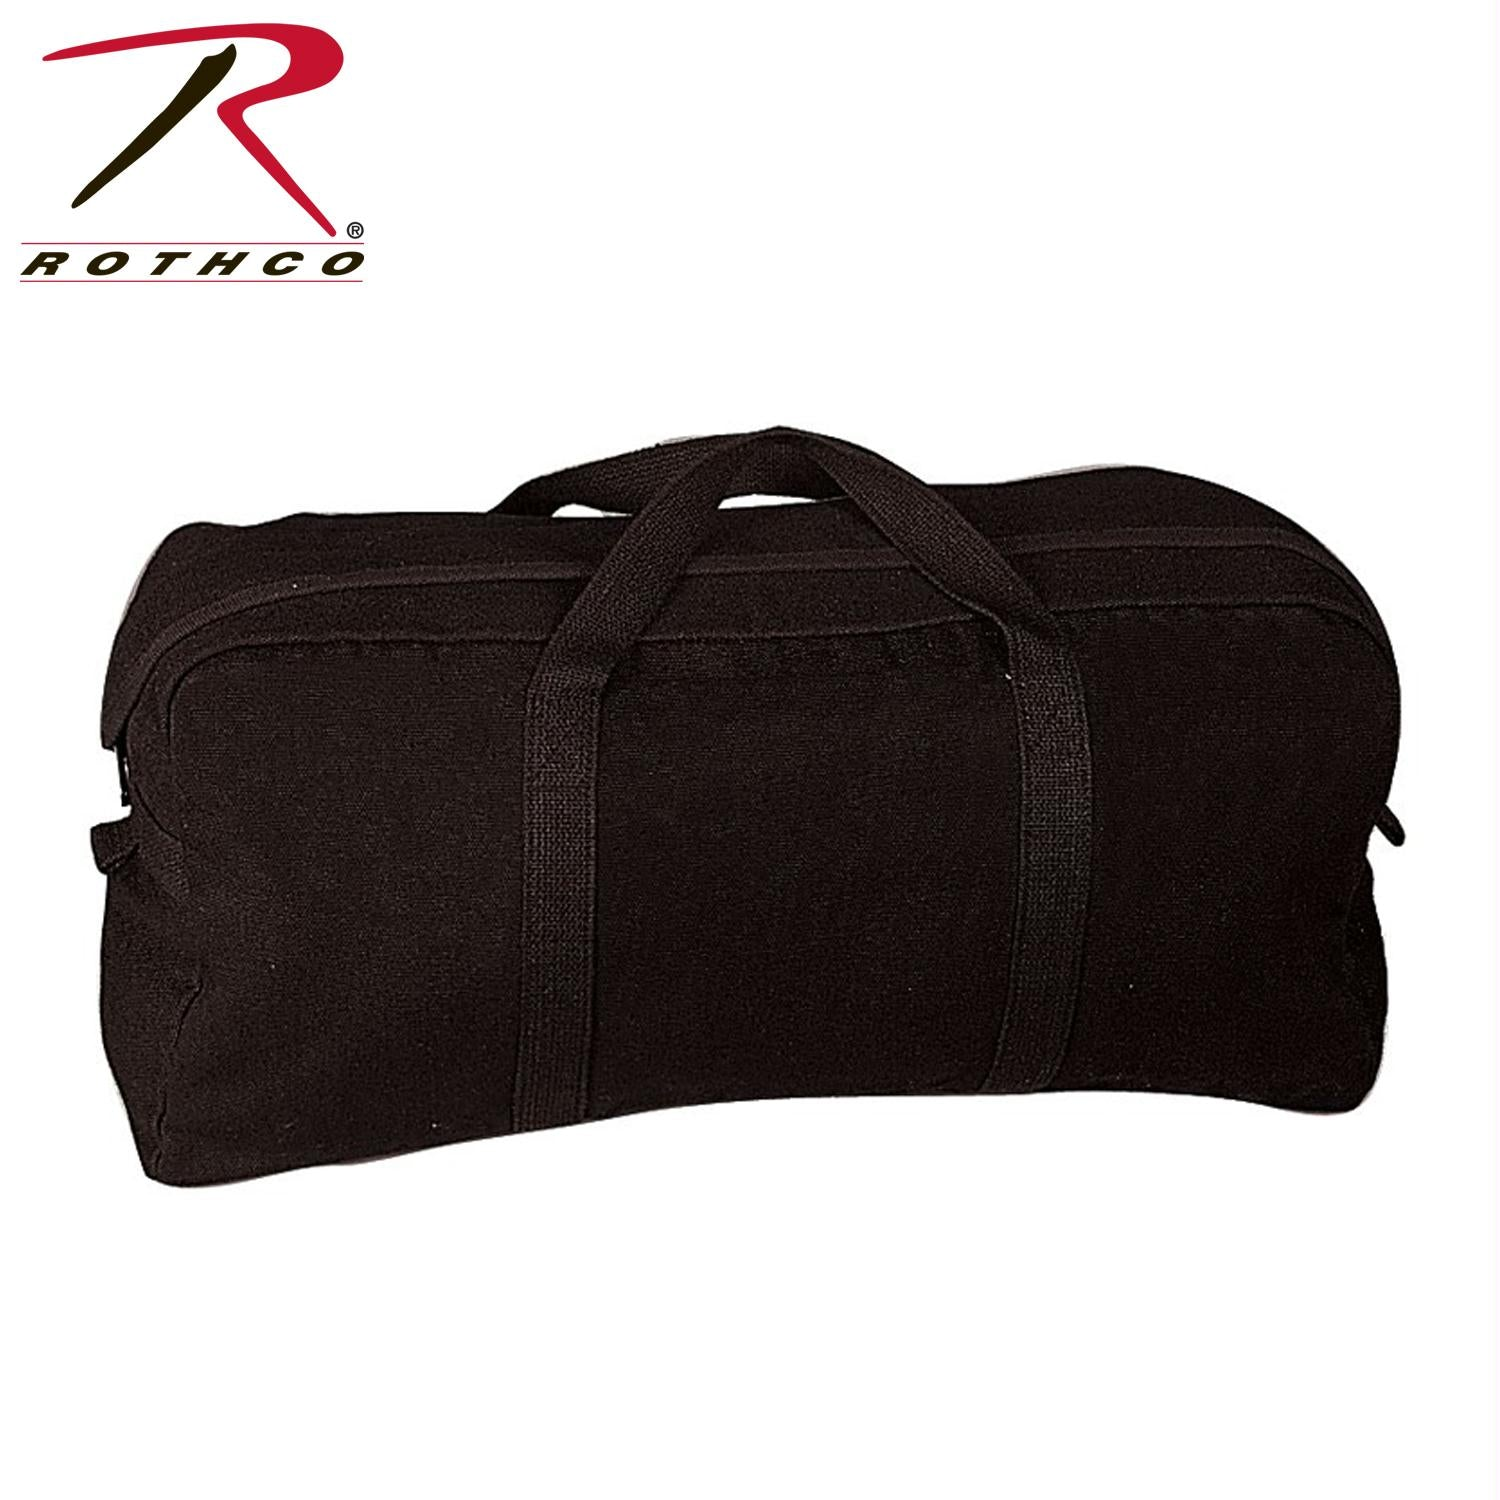 Rothco Canvas Tanker Style Tool Bag - Black